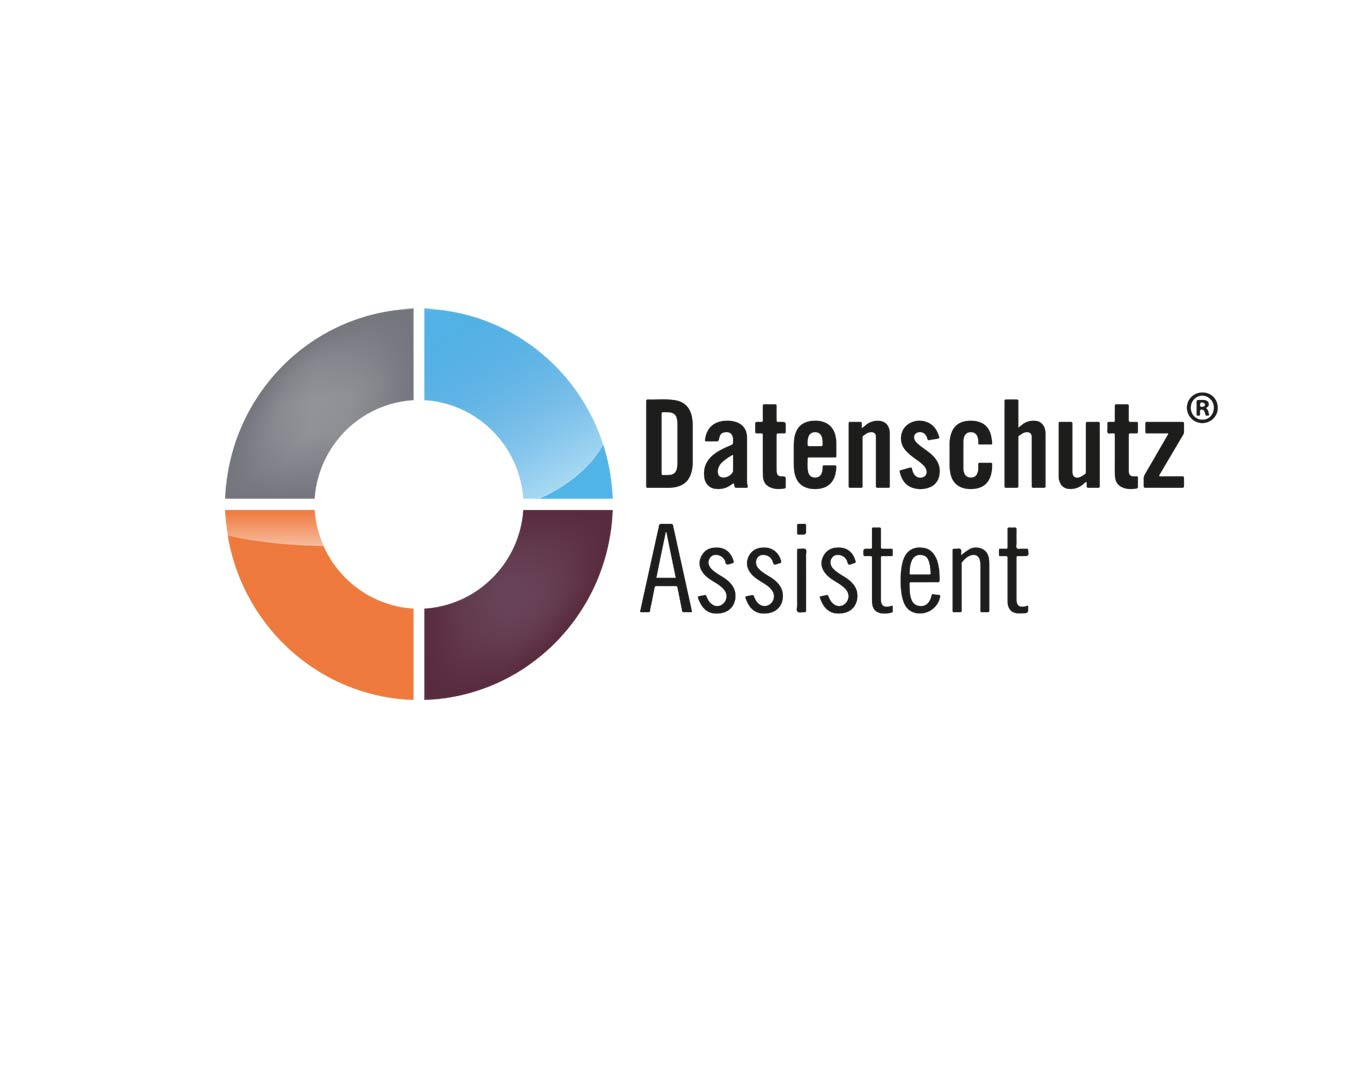 Product picture of Datenschutz Assistent